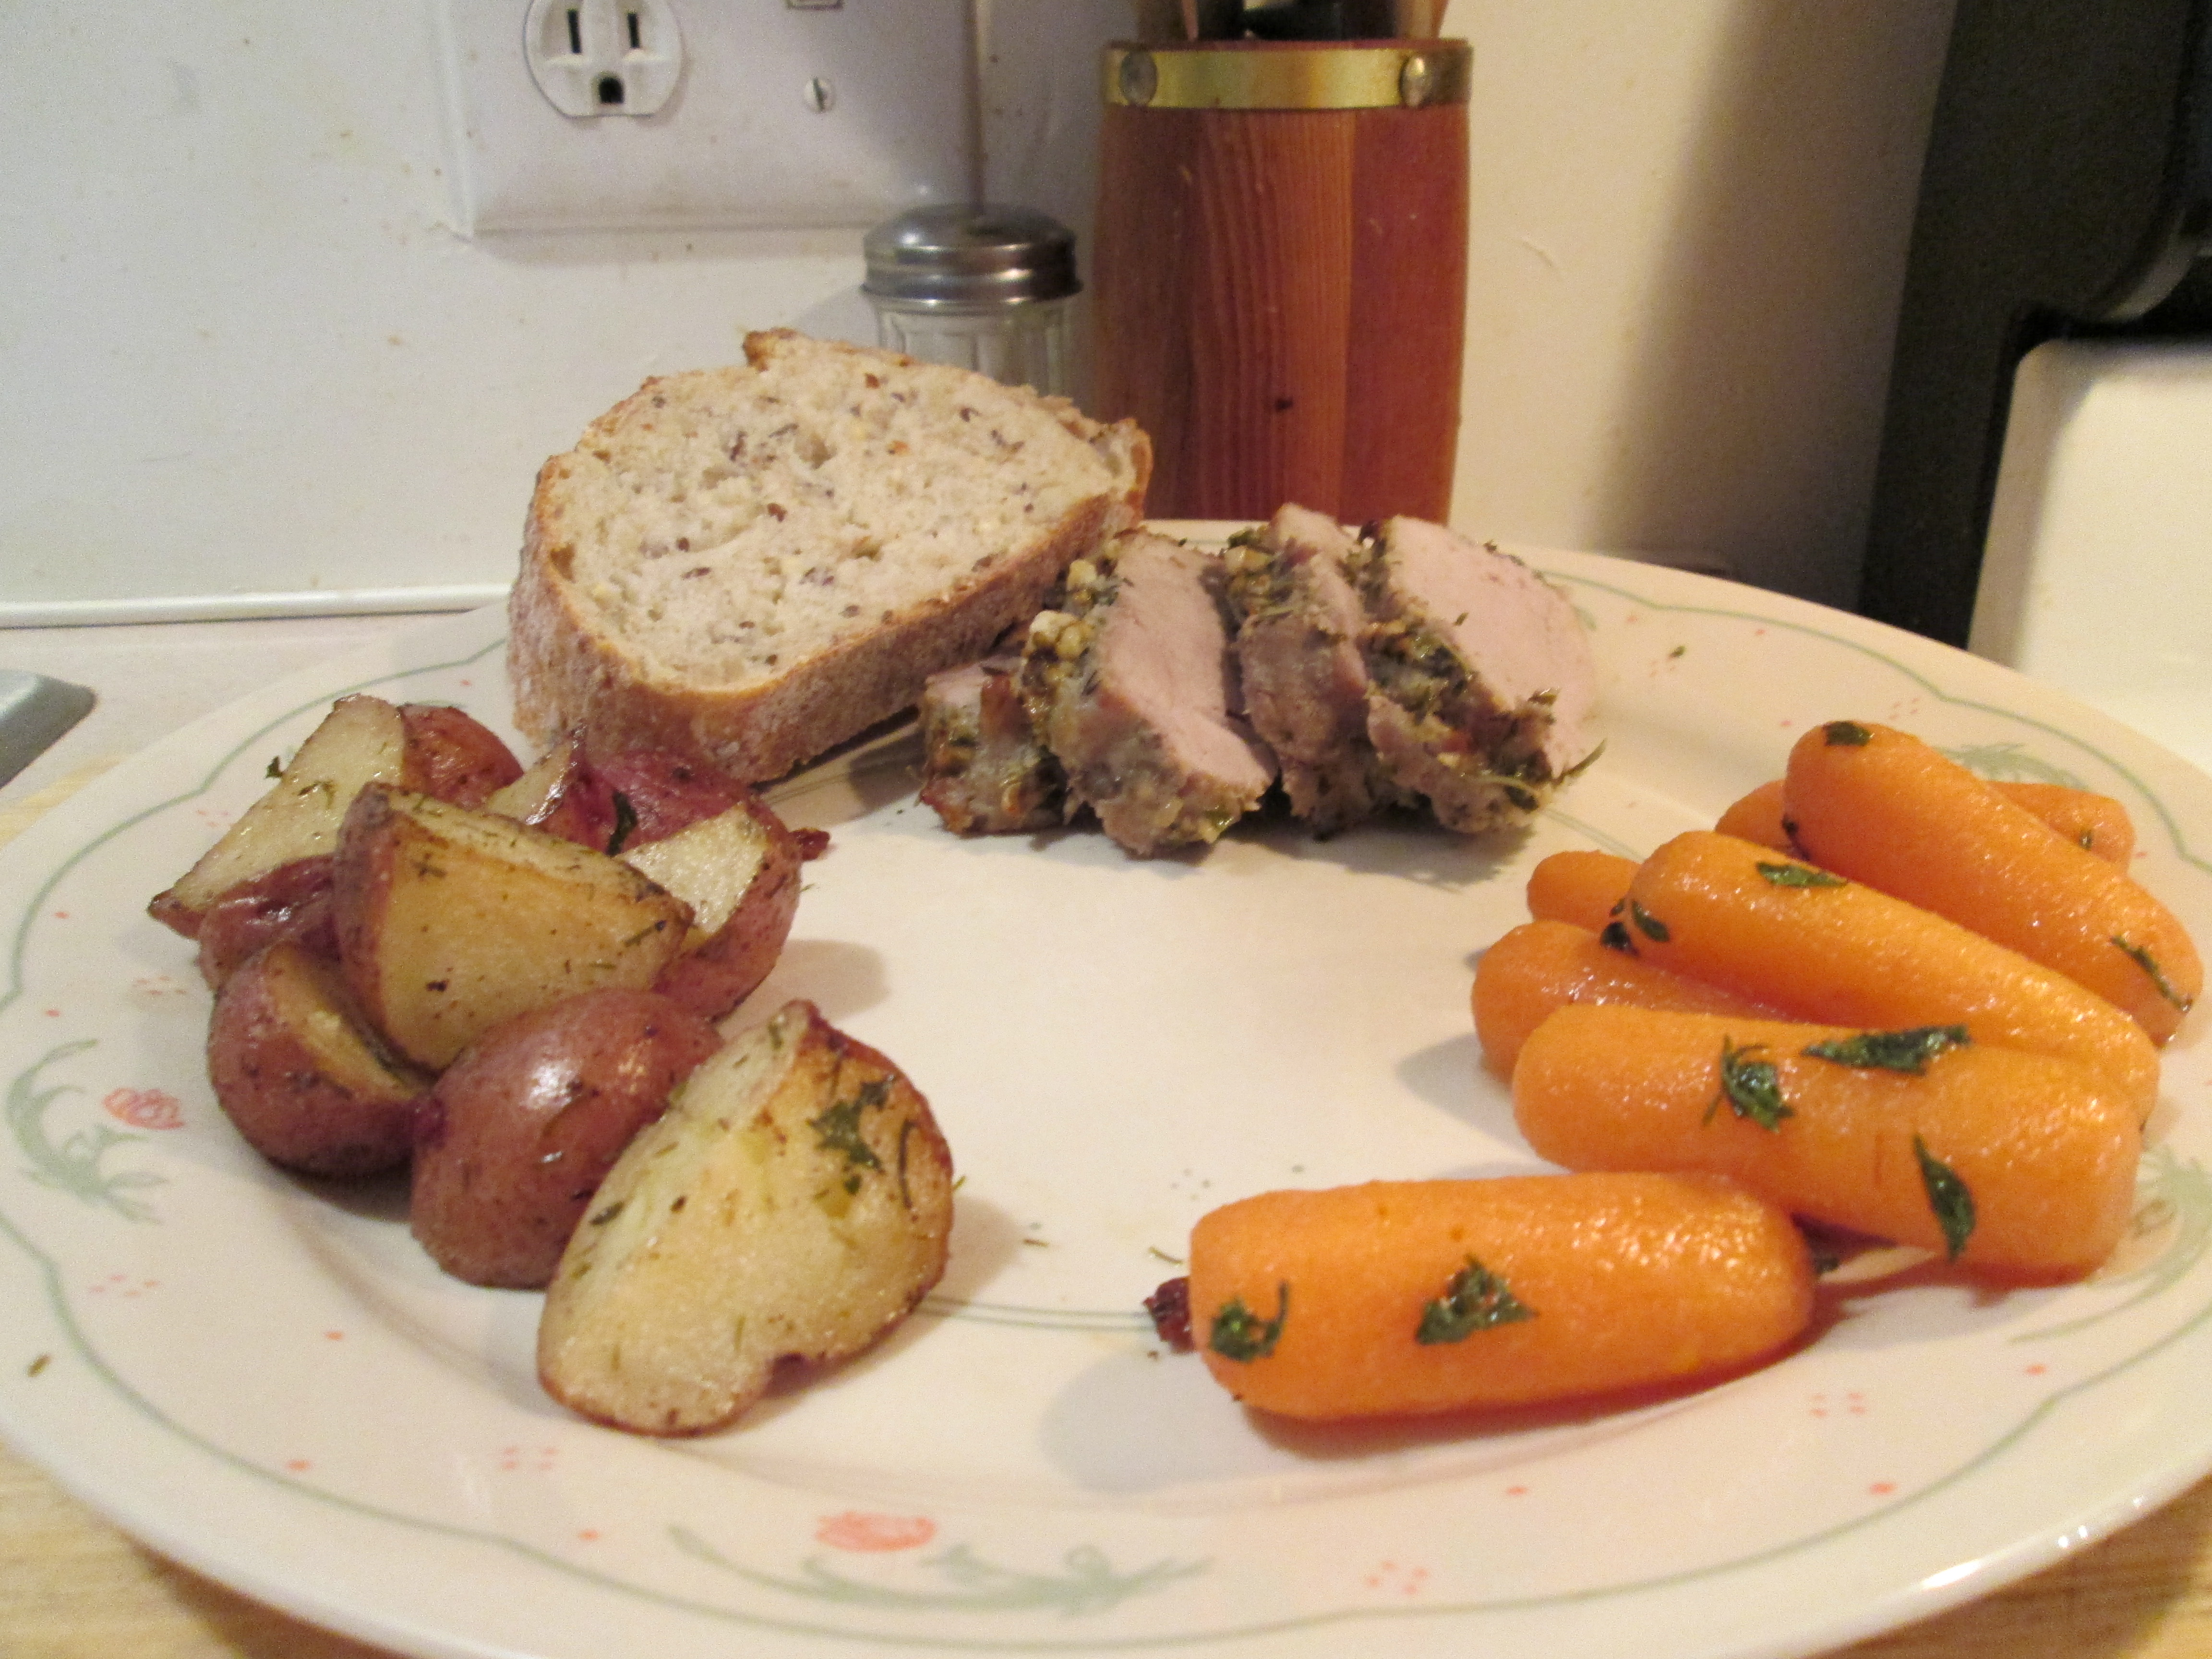 lamb with herb crusted pork loin with herb crusted pork roast potatoes ...